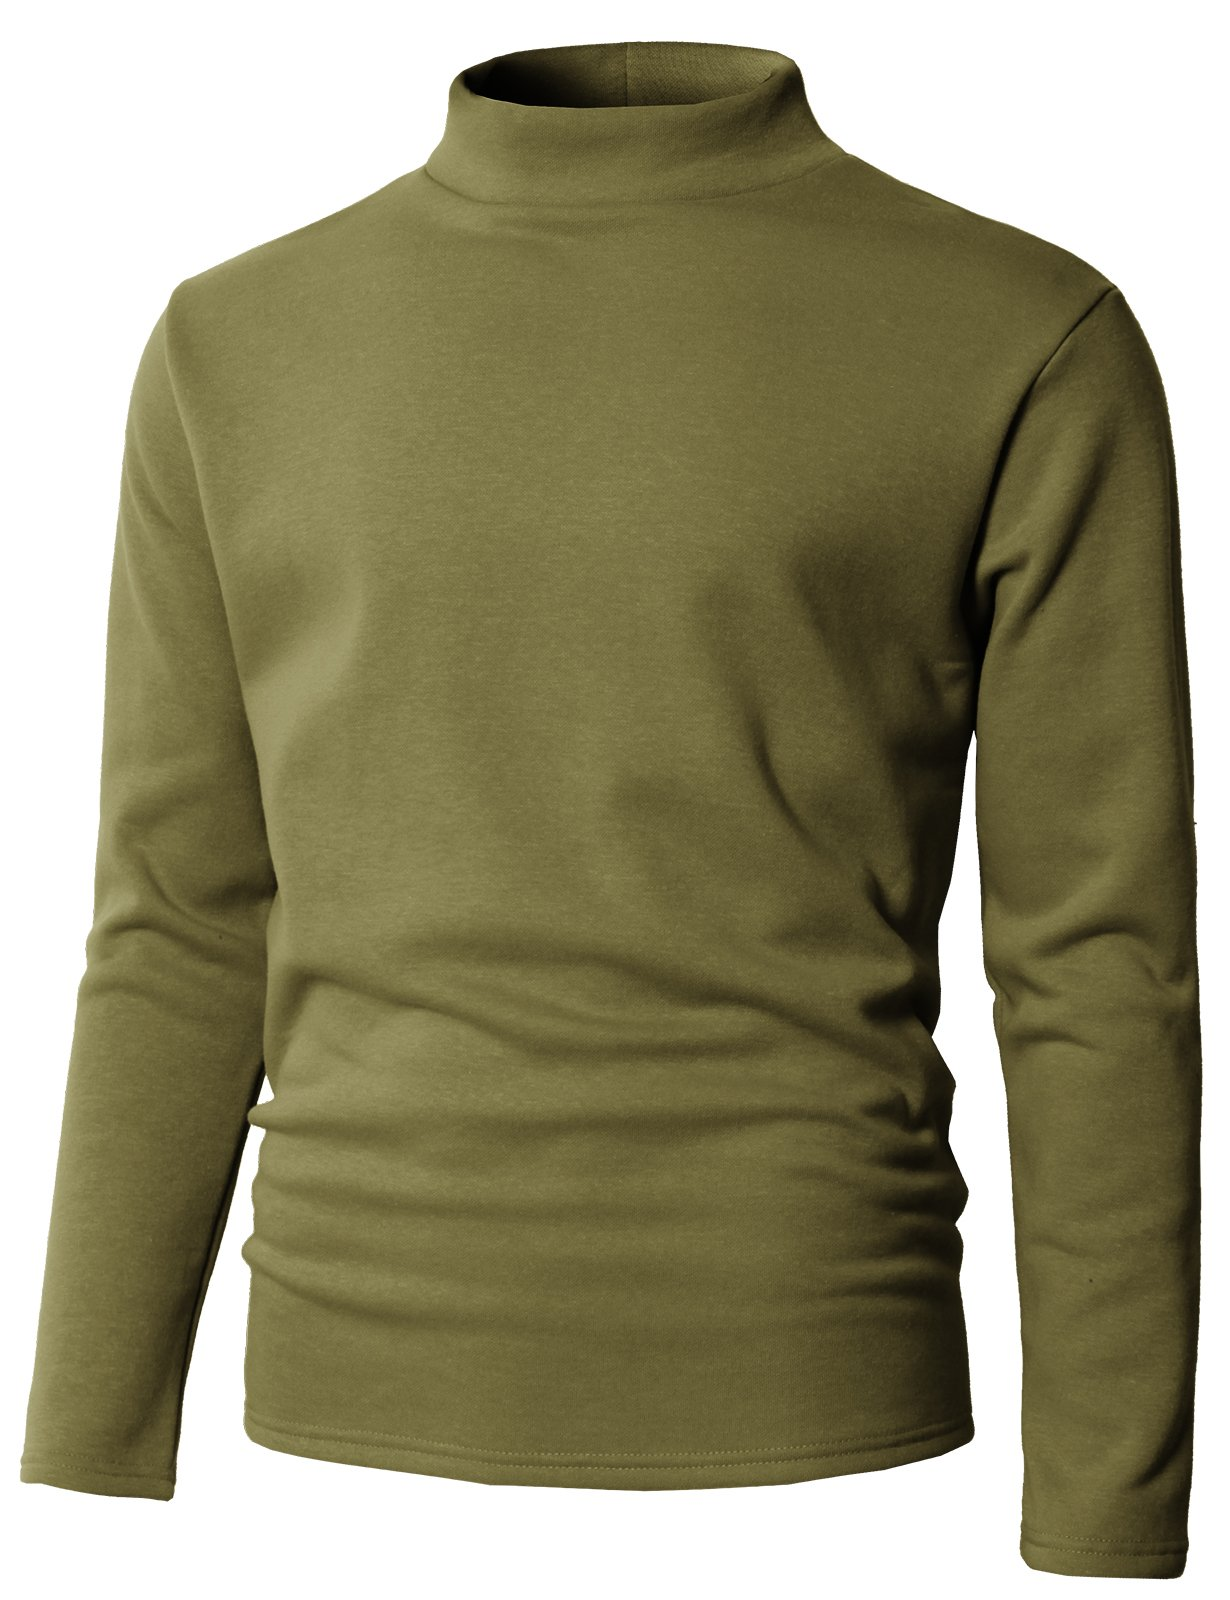 H2H Mens Regular Fit Soft Cotton Blend Turtleneck Pullover Sweater Khaki US M/Asia M (KMOSWL0230)